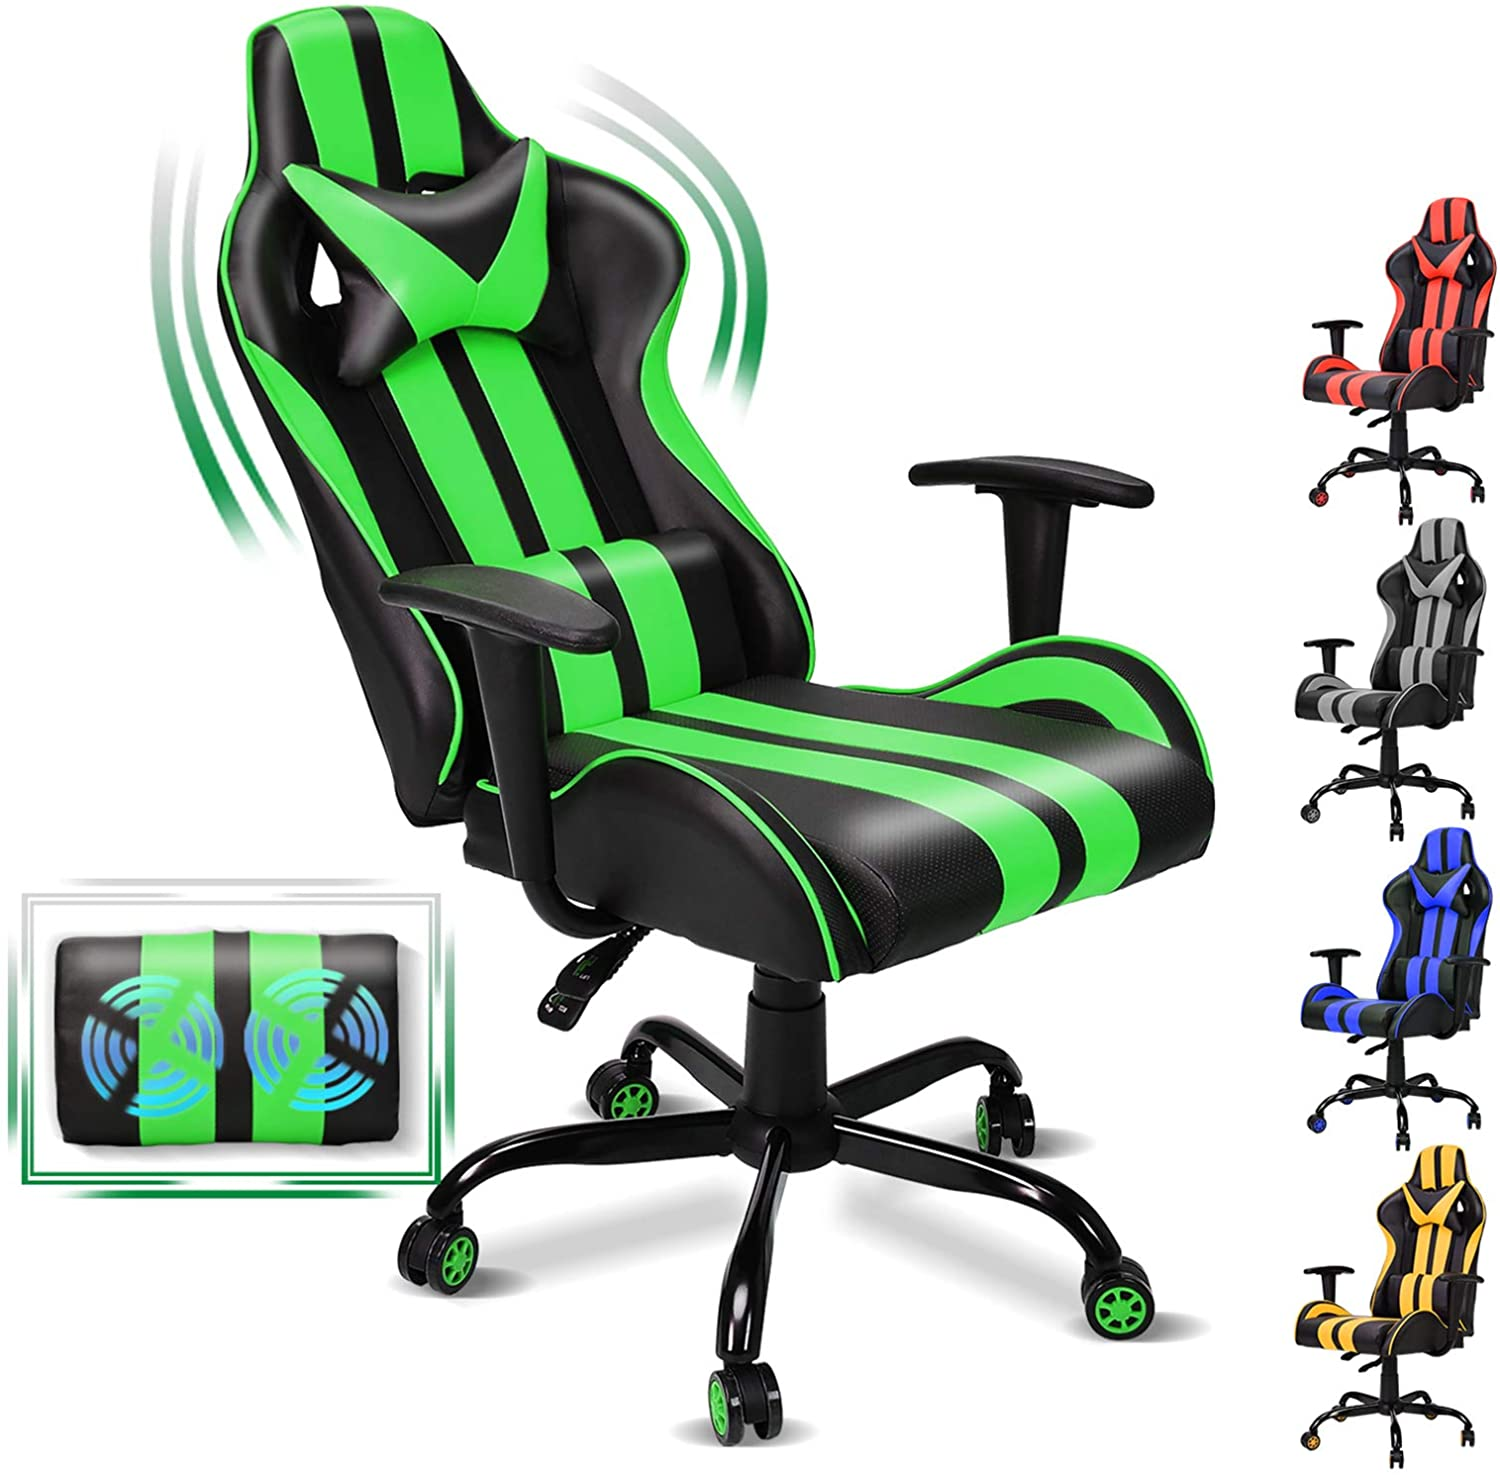 FERGHANA Video Gaming Chair